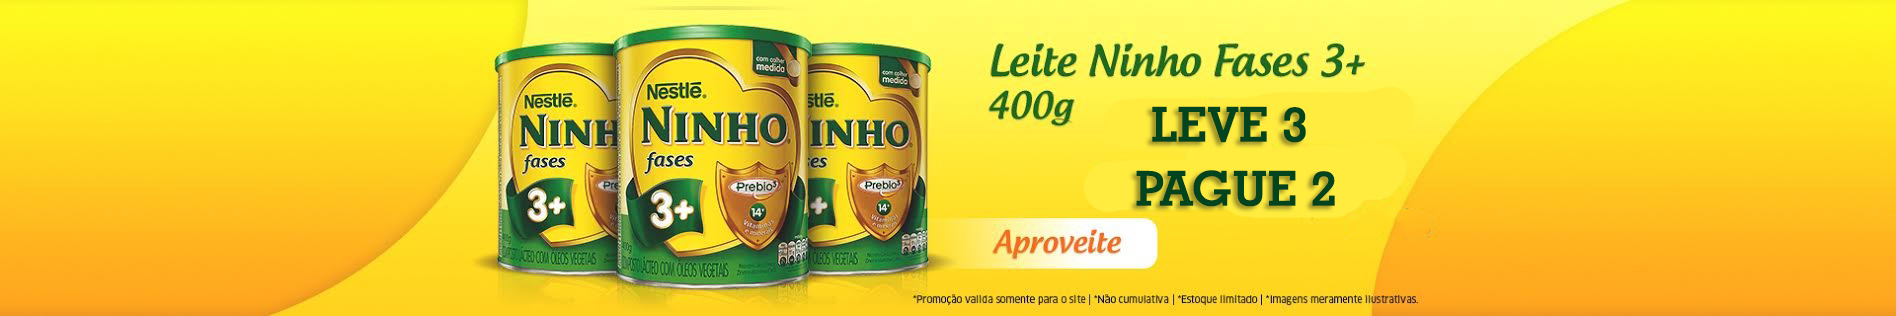 Banner Home | Leite Ninho Fases 3 Leve 3 Pague 2